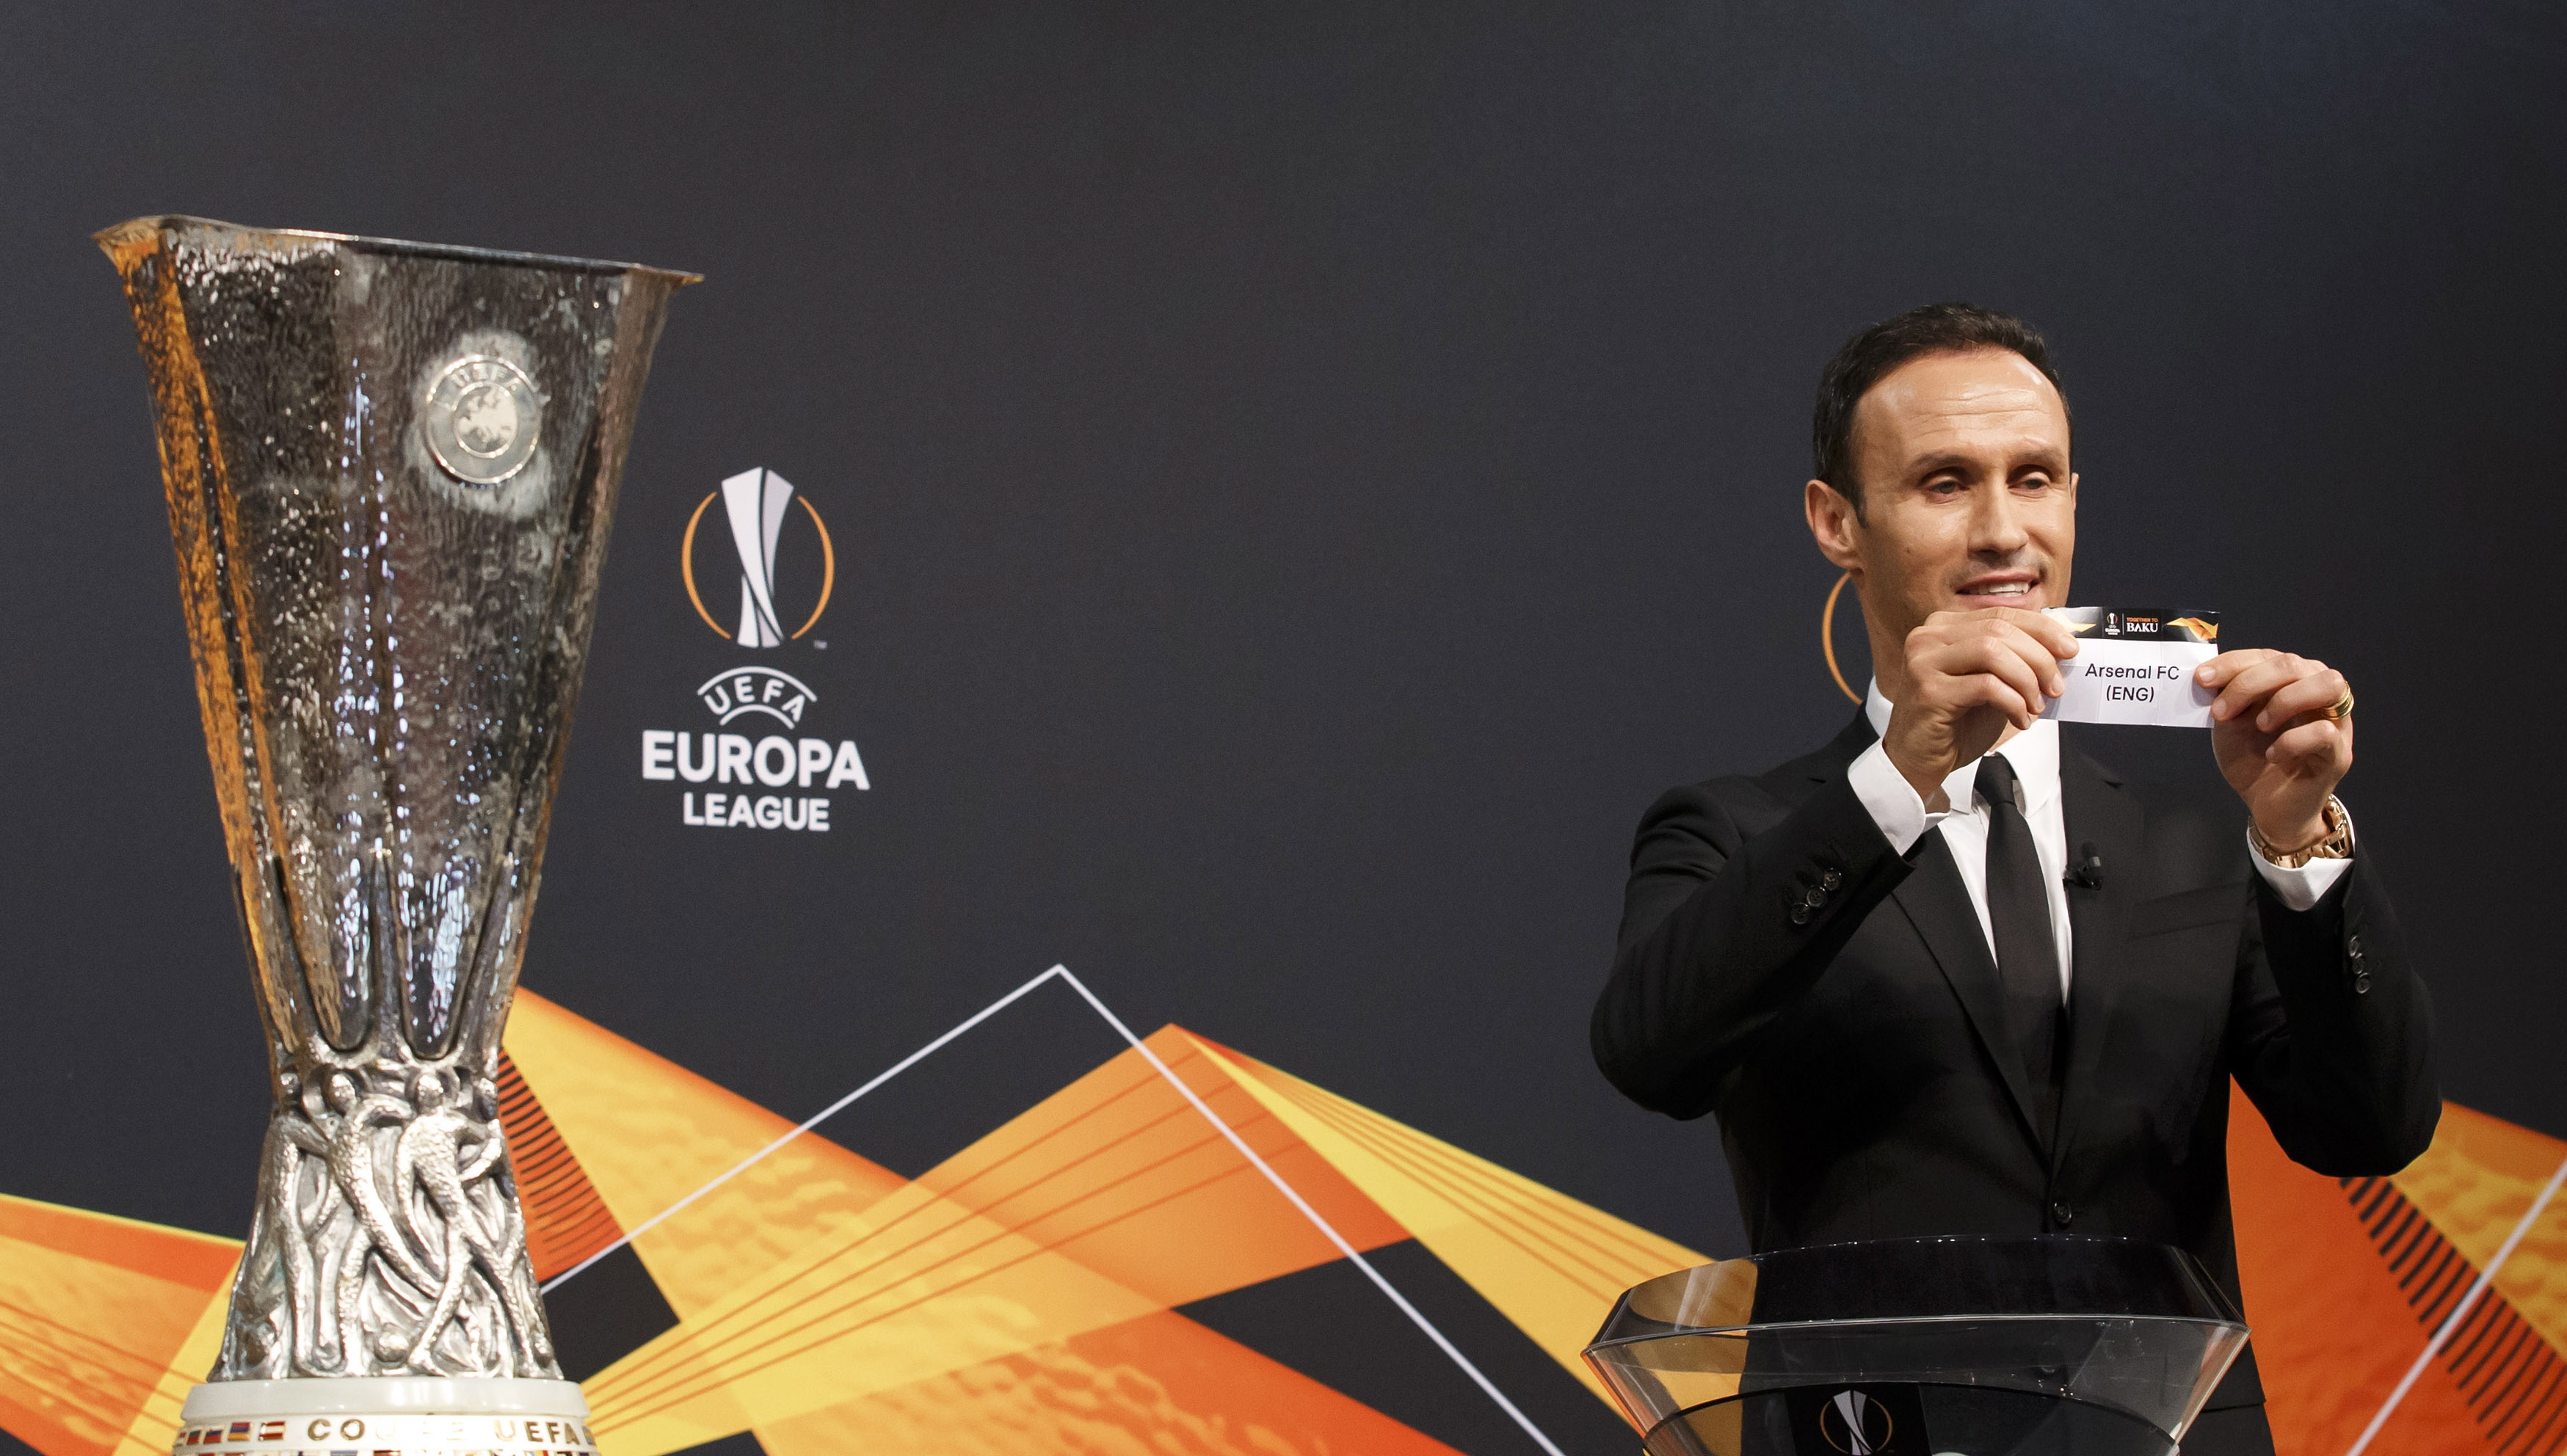 Here is the list of teams that have qualified for the Europa League last 32